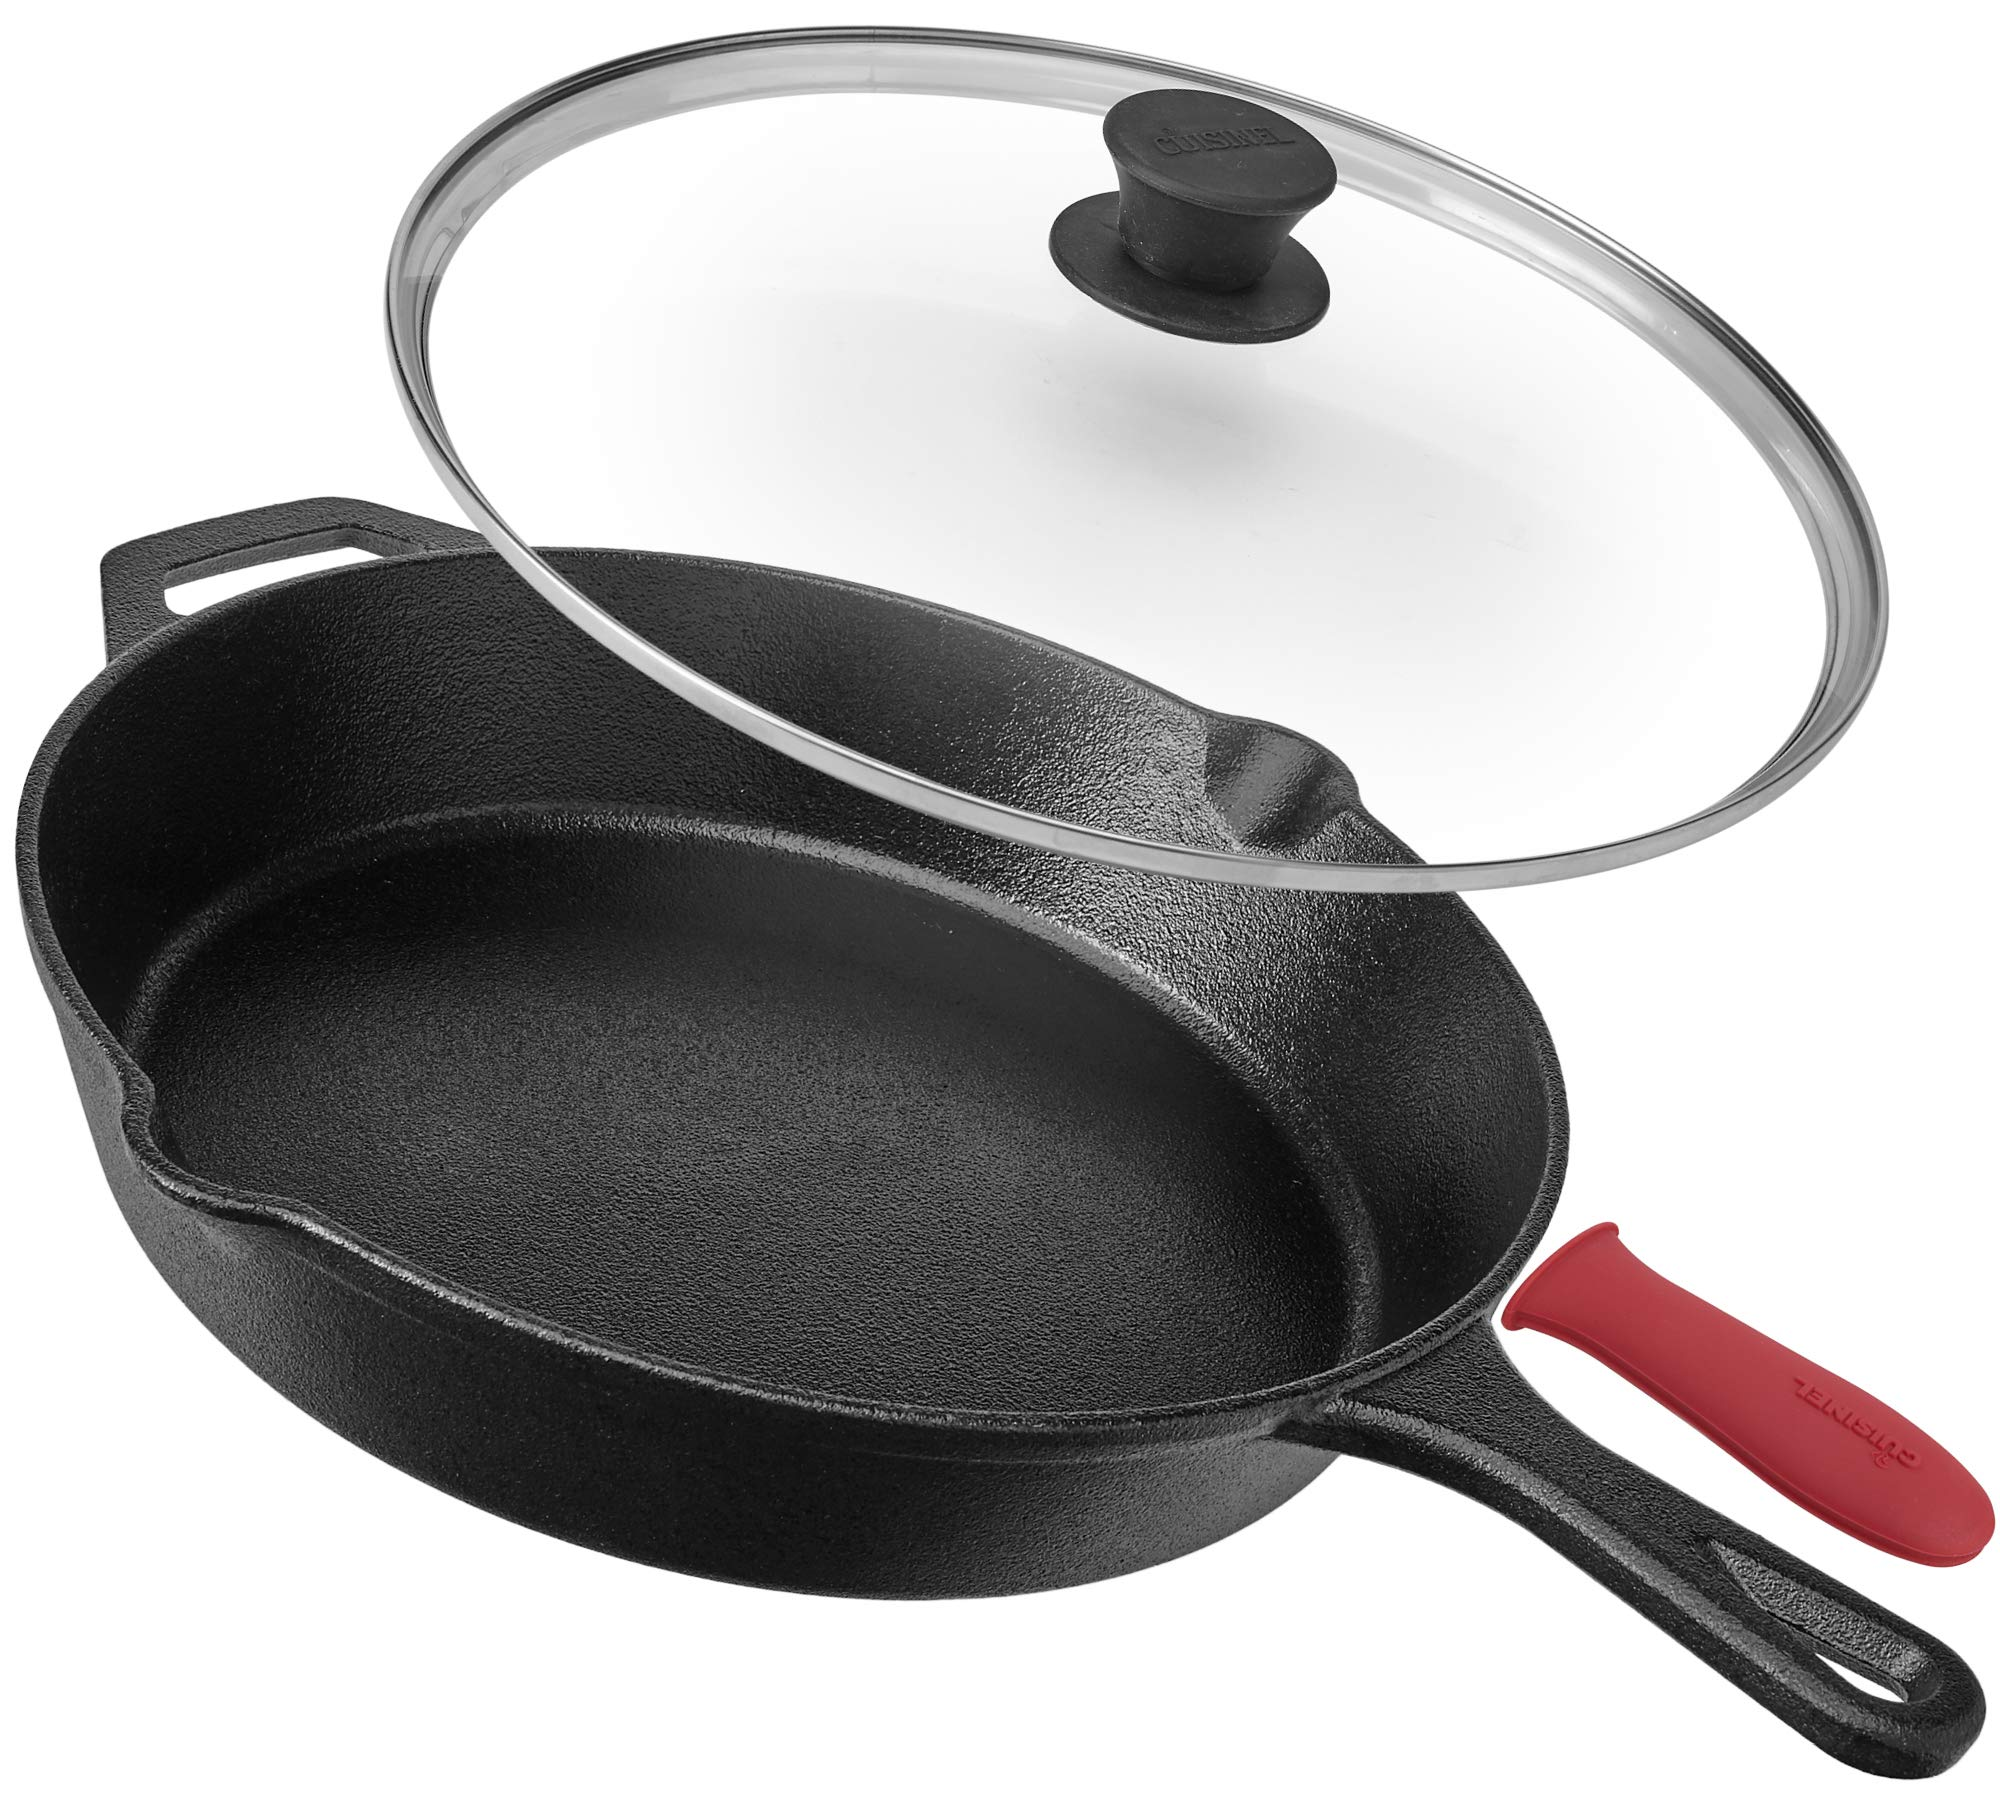 Pre-Seasoned Cast Iron Skillet (12-Inch) with Glass Lid and Handle Cover Oven Safe Cookware - Heat-Resistant Holder - Indoor and Outdoor Use - Grill, Stovetop, Induction Safe by cuisinel